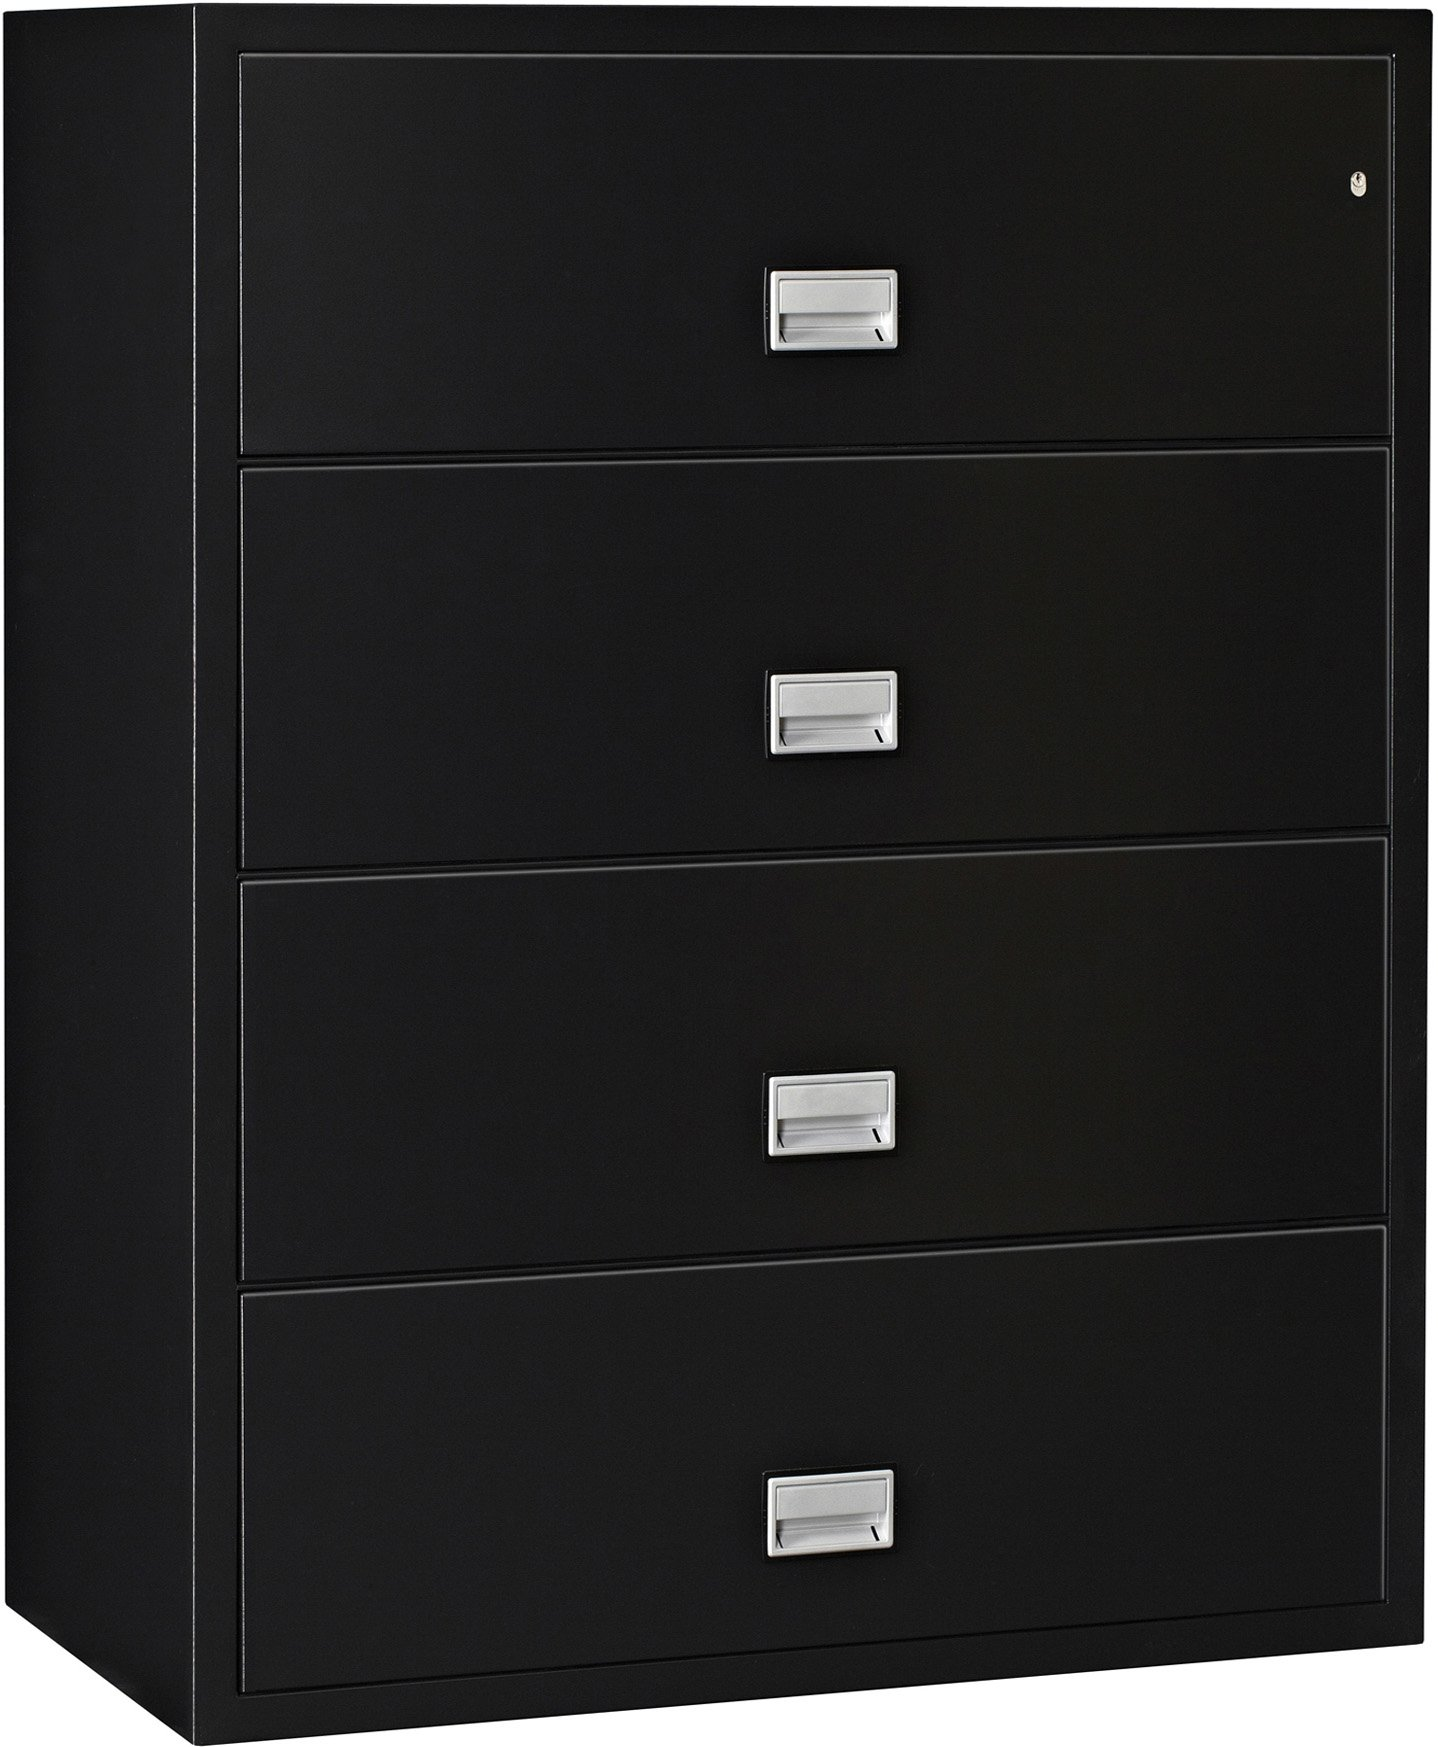 Phoenix Lateral 44 inch 4-Drawer Fireproof File Cabinet with Water Seal - Black by PHOENIX SAFE INTERNATIONAL LLC